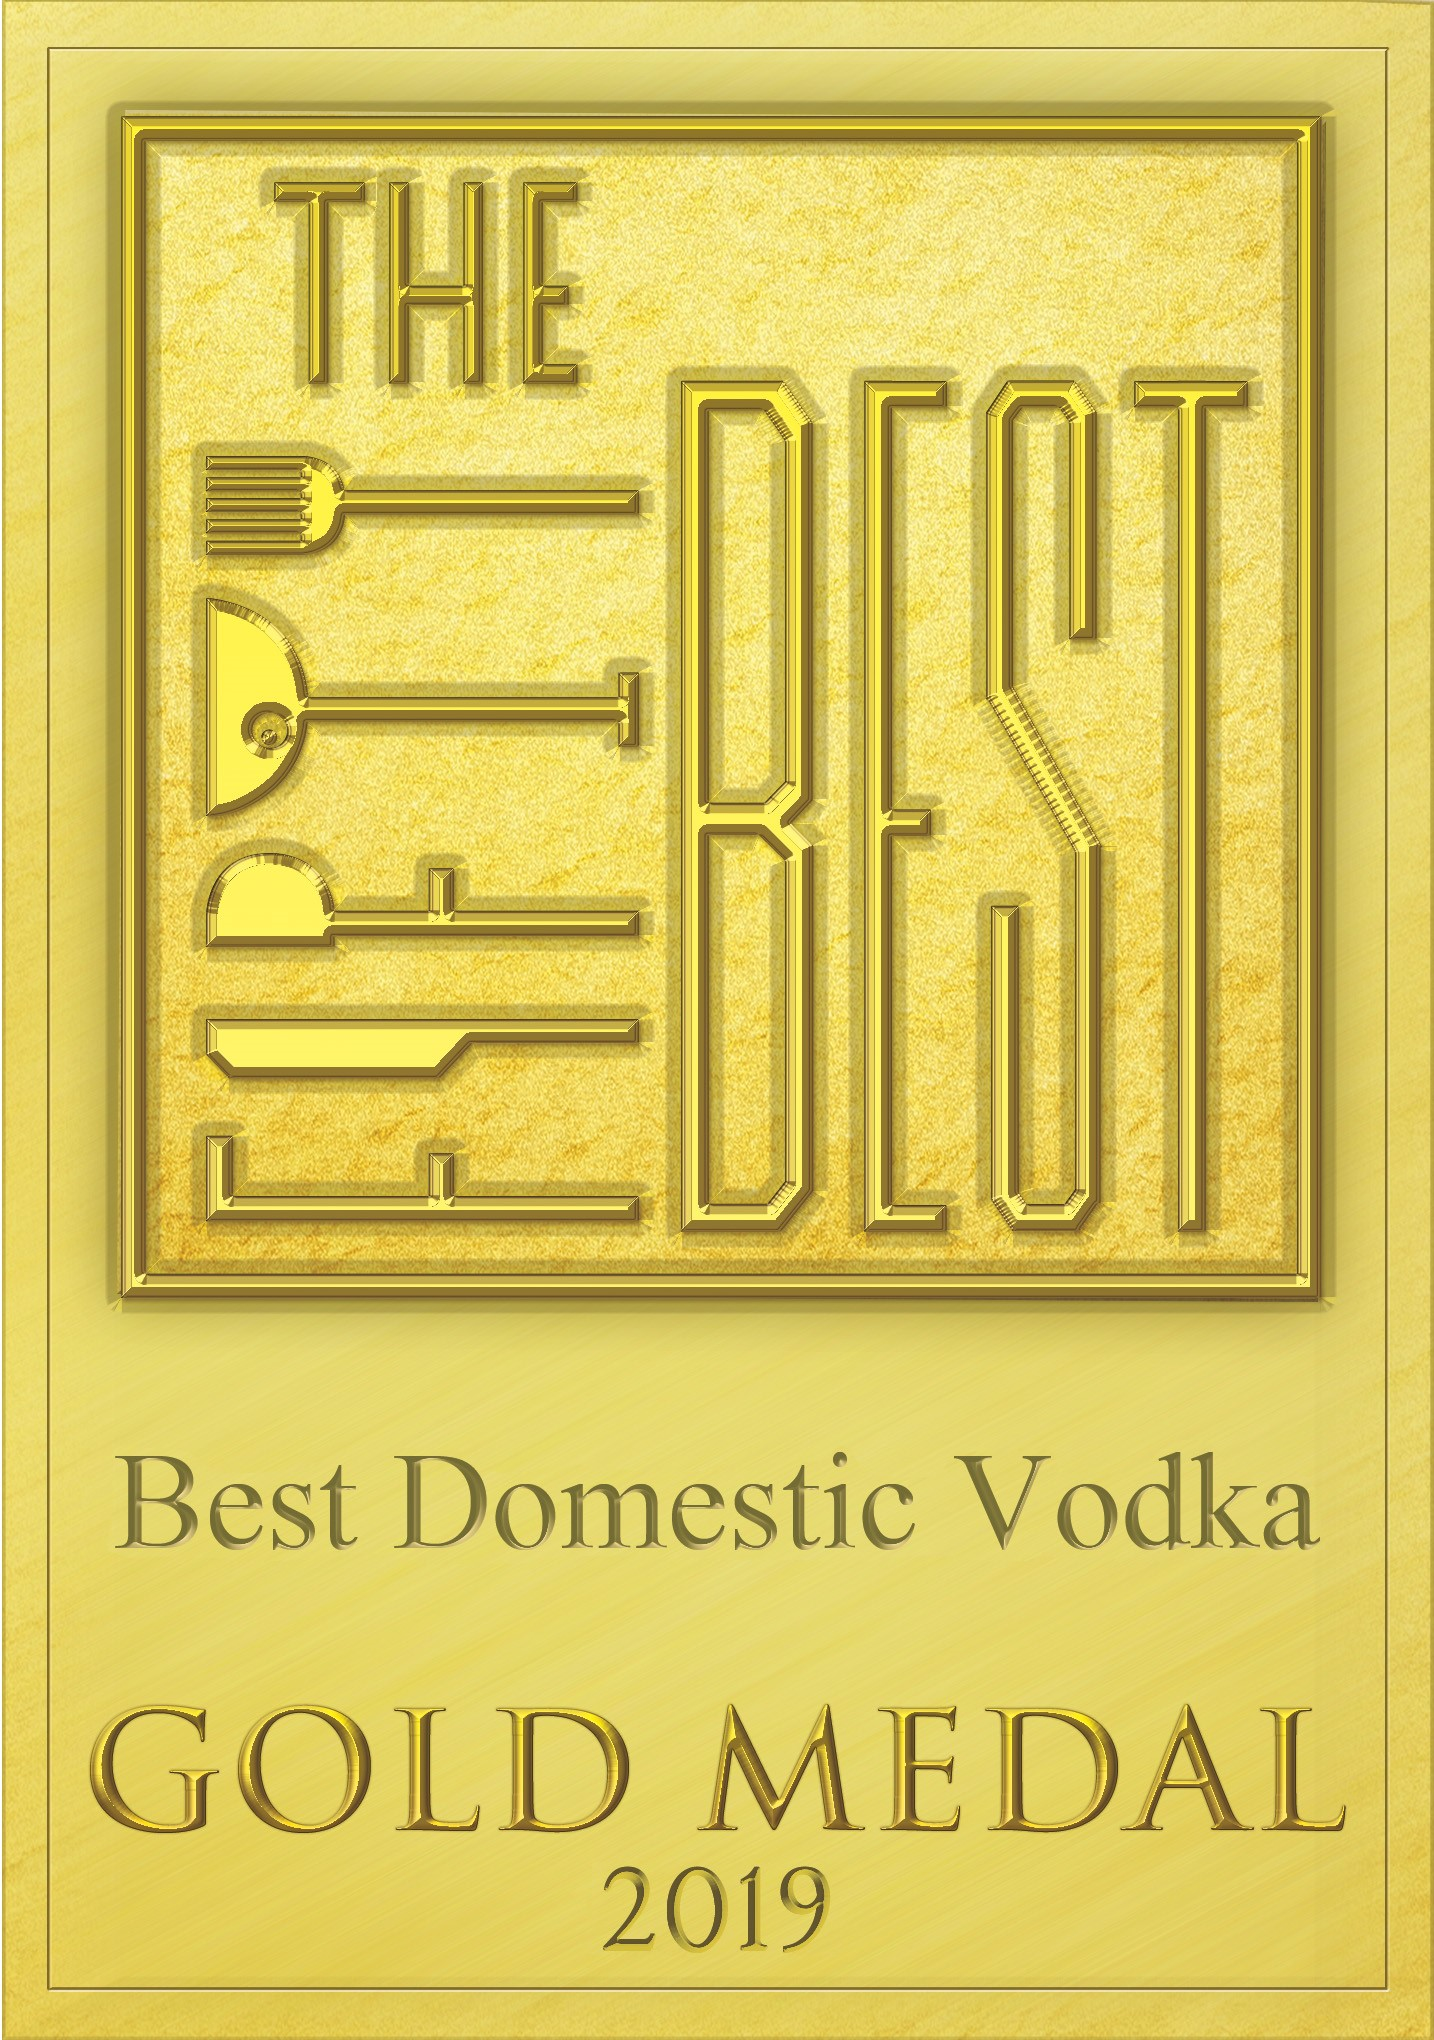 TheFityBest_GoldMedal_Domestic_Vodka_2019.jpg